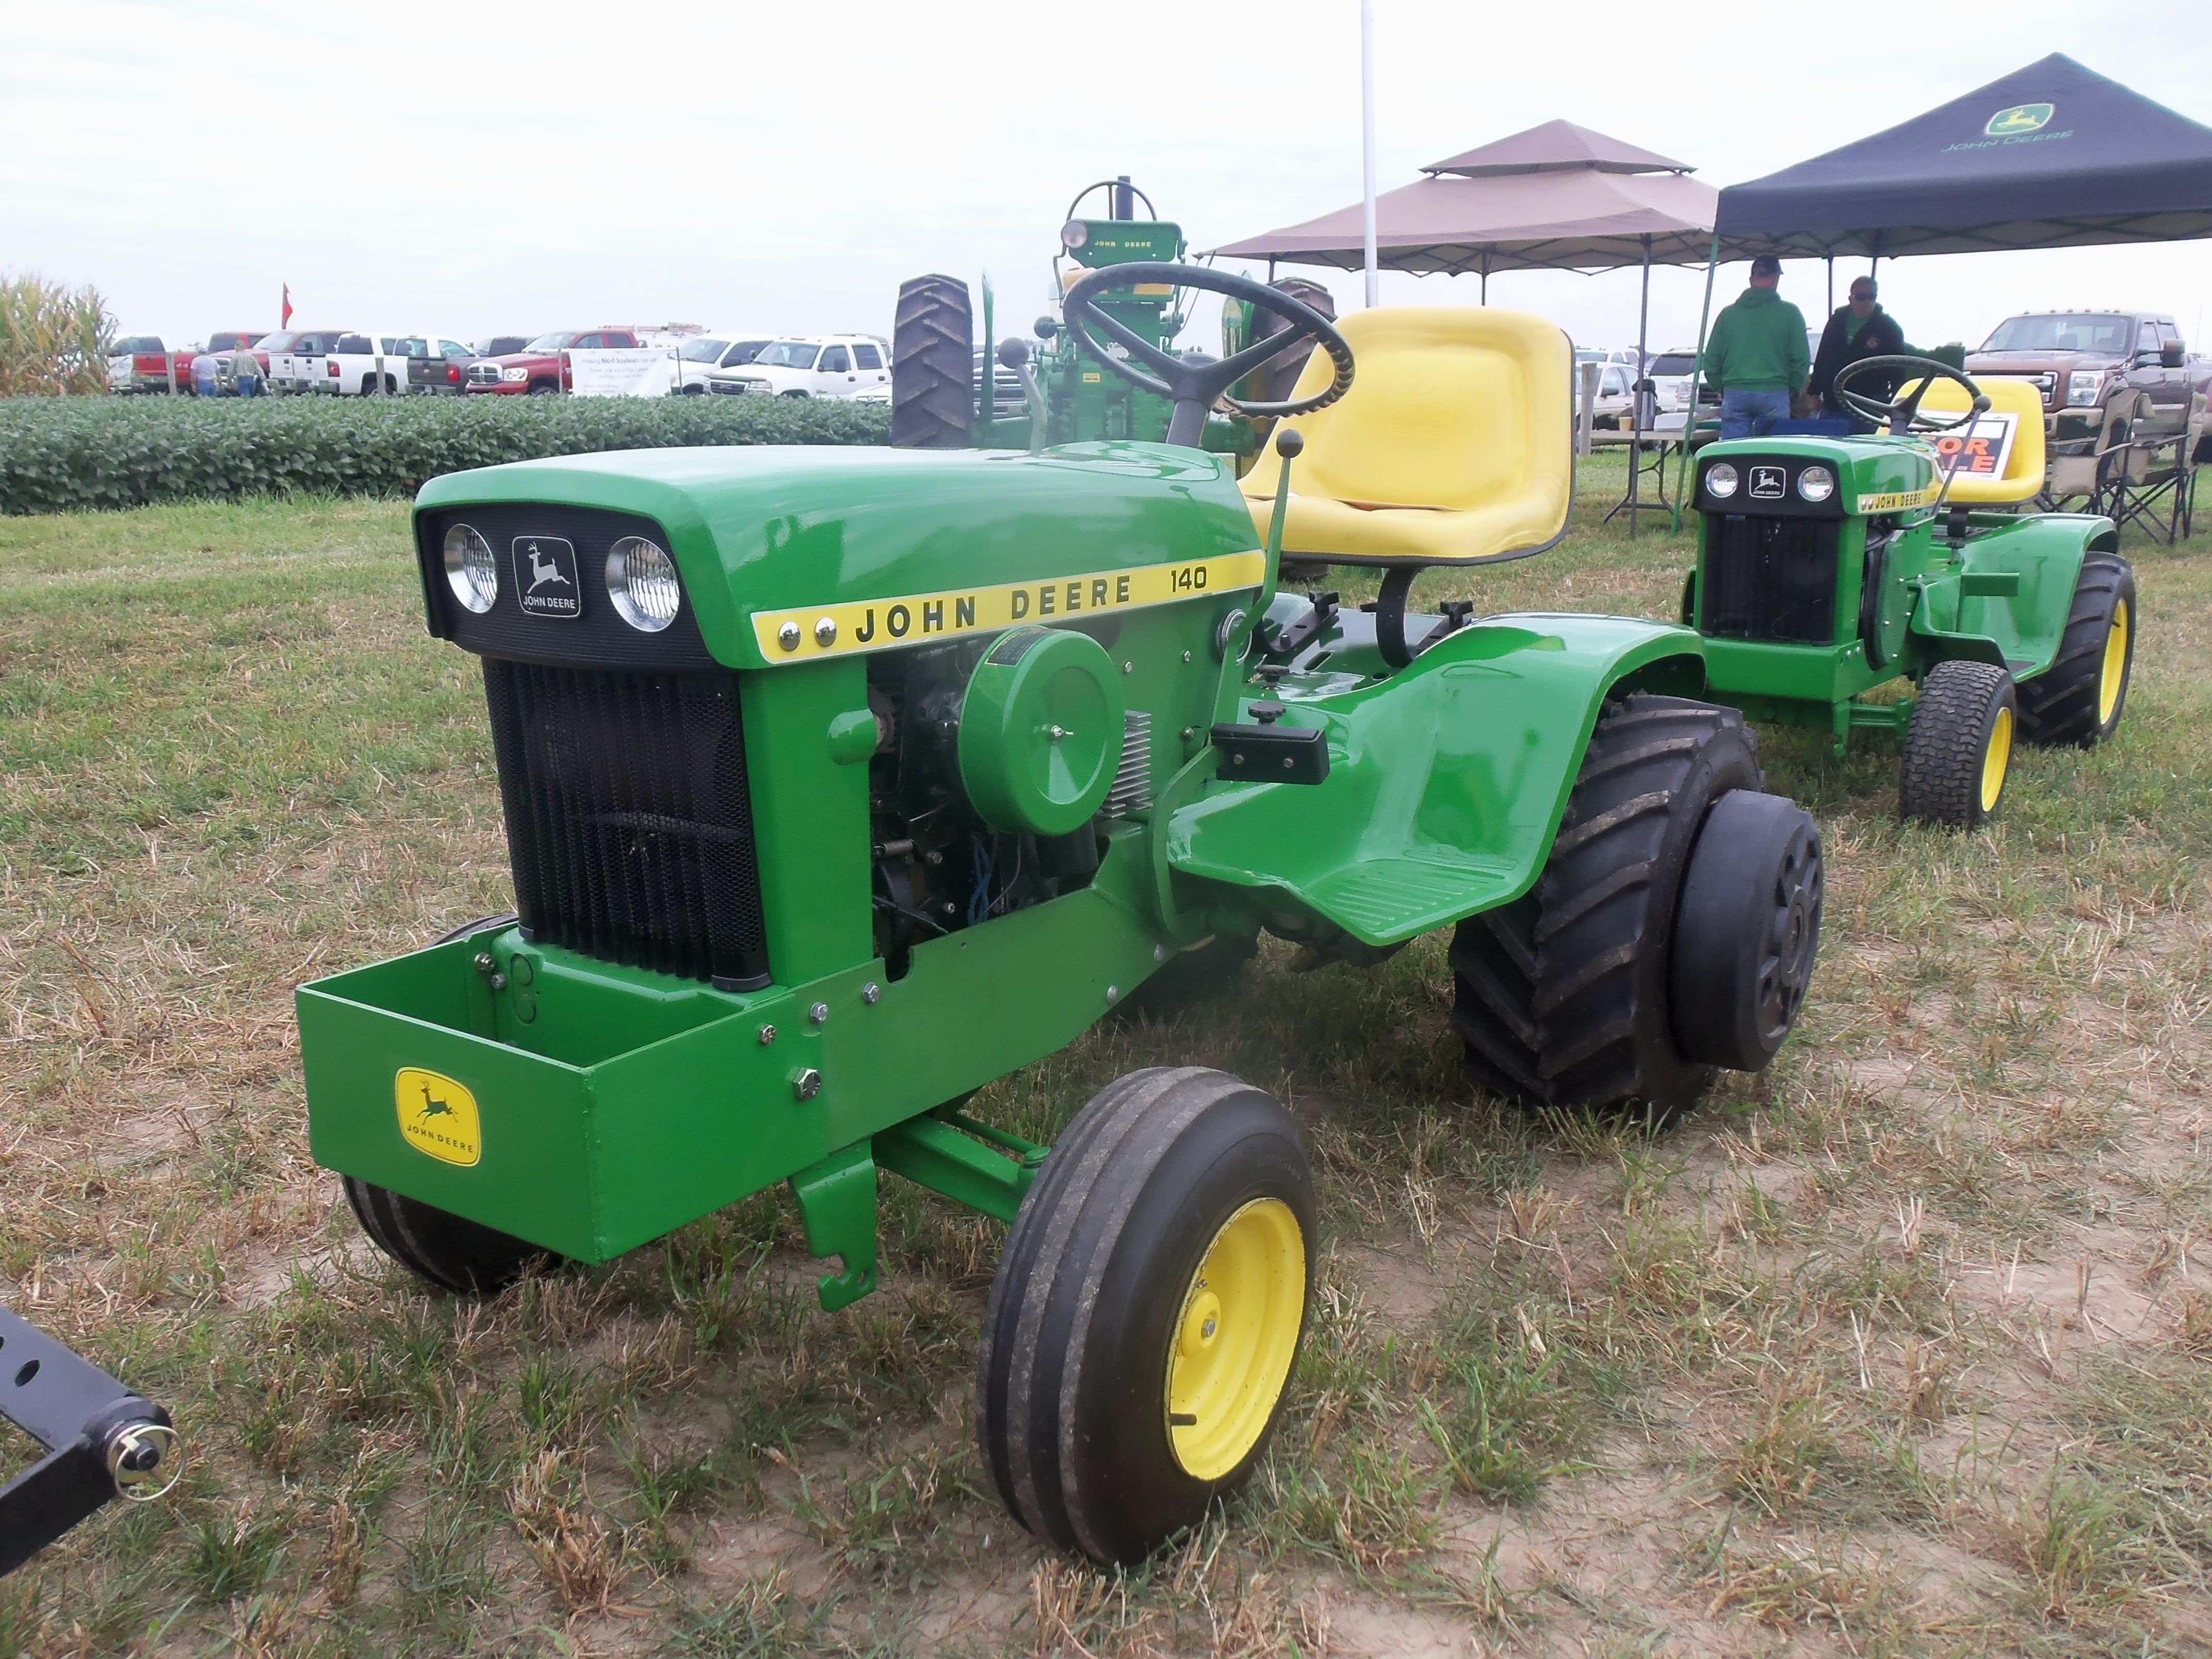 tractors gather john to celebrate deere of years and mowing dodge collector garden tractor lawn collectors